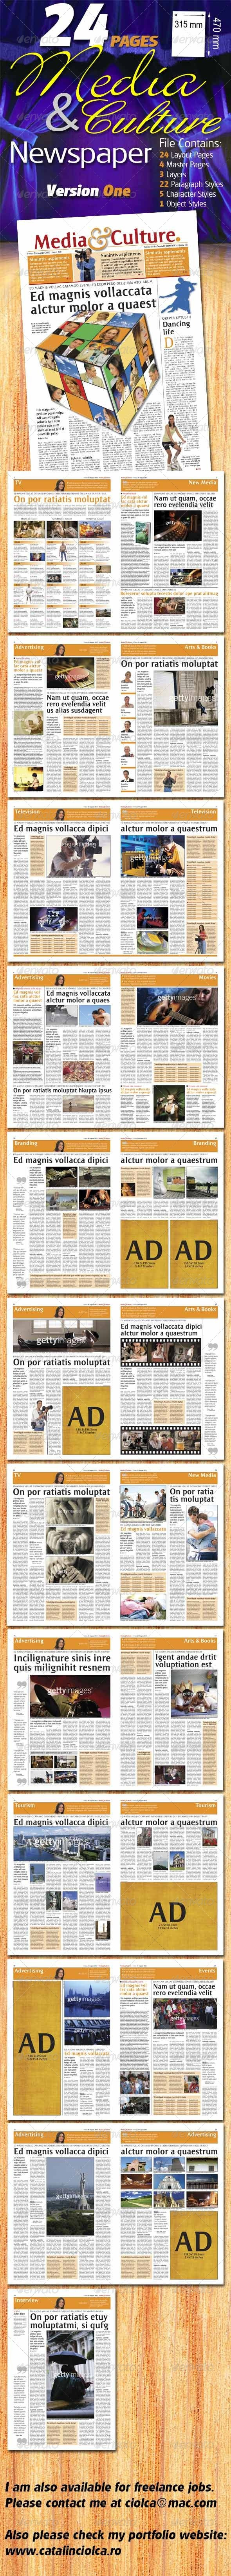 GraphicRiver 24 Pages Media & Culture Newspaper Version One 1022686